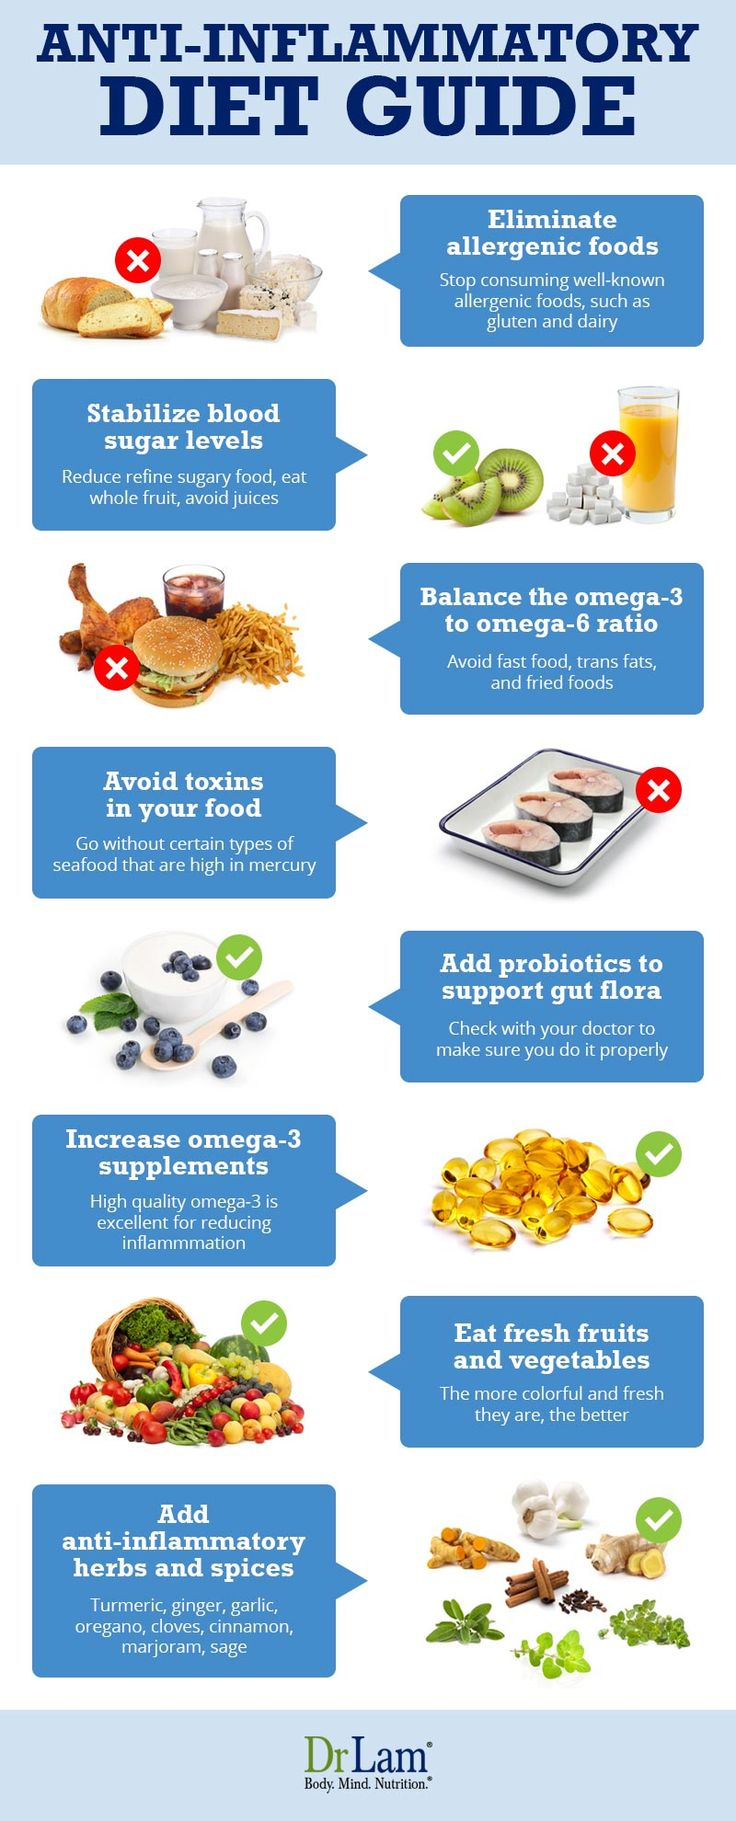 A Fully Instructive Guide to A Very Successful Anti-Inflammatory Diet